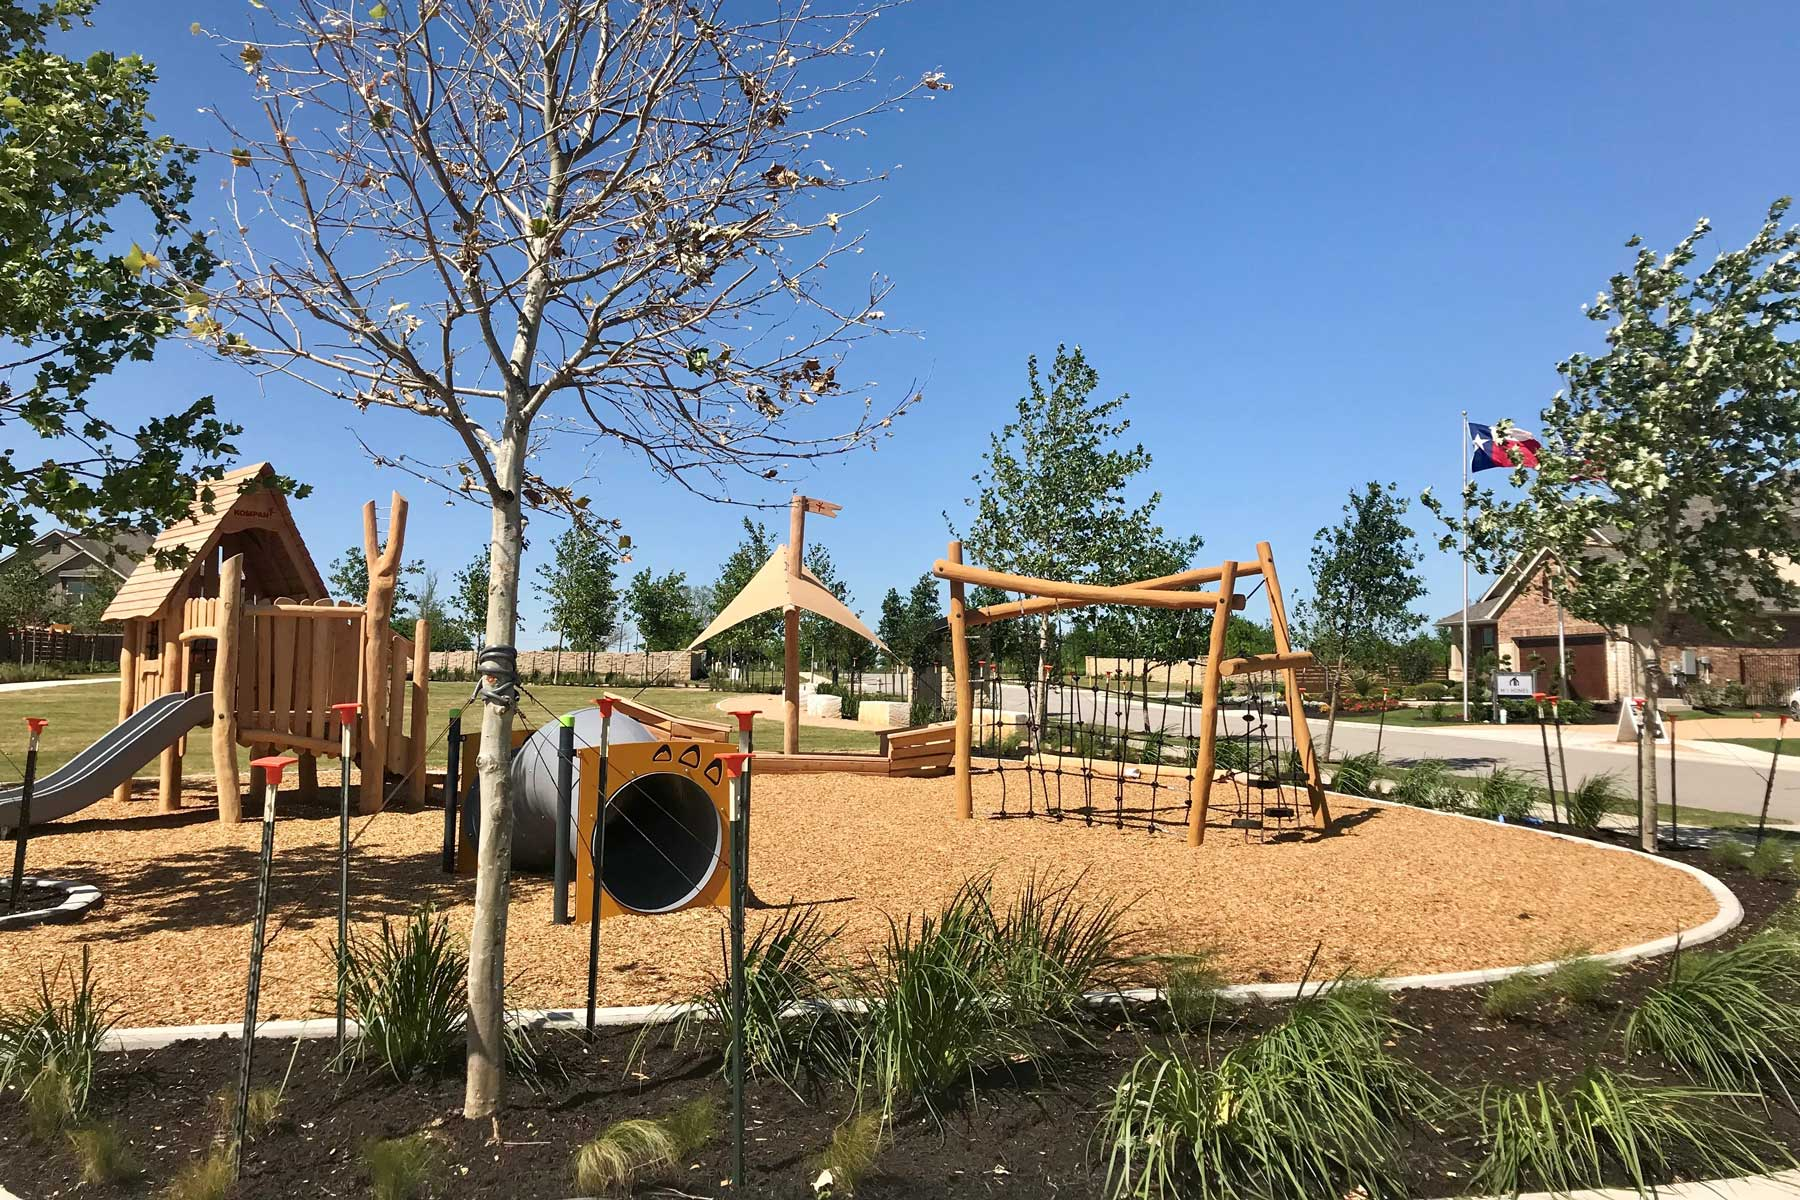 Carmel Creek Playground